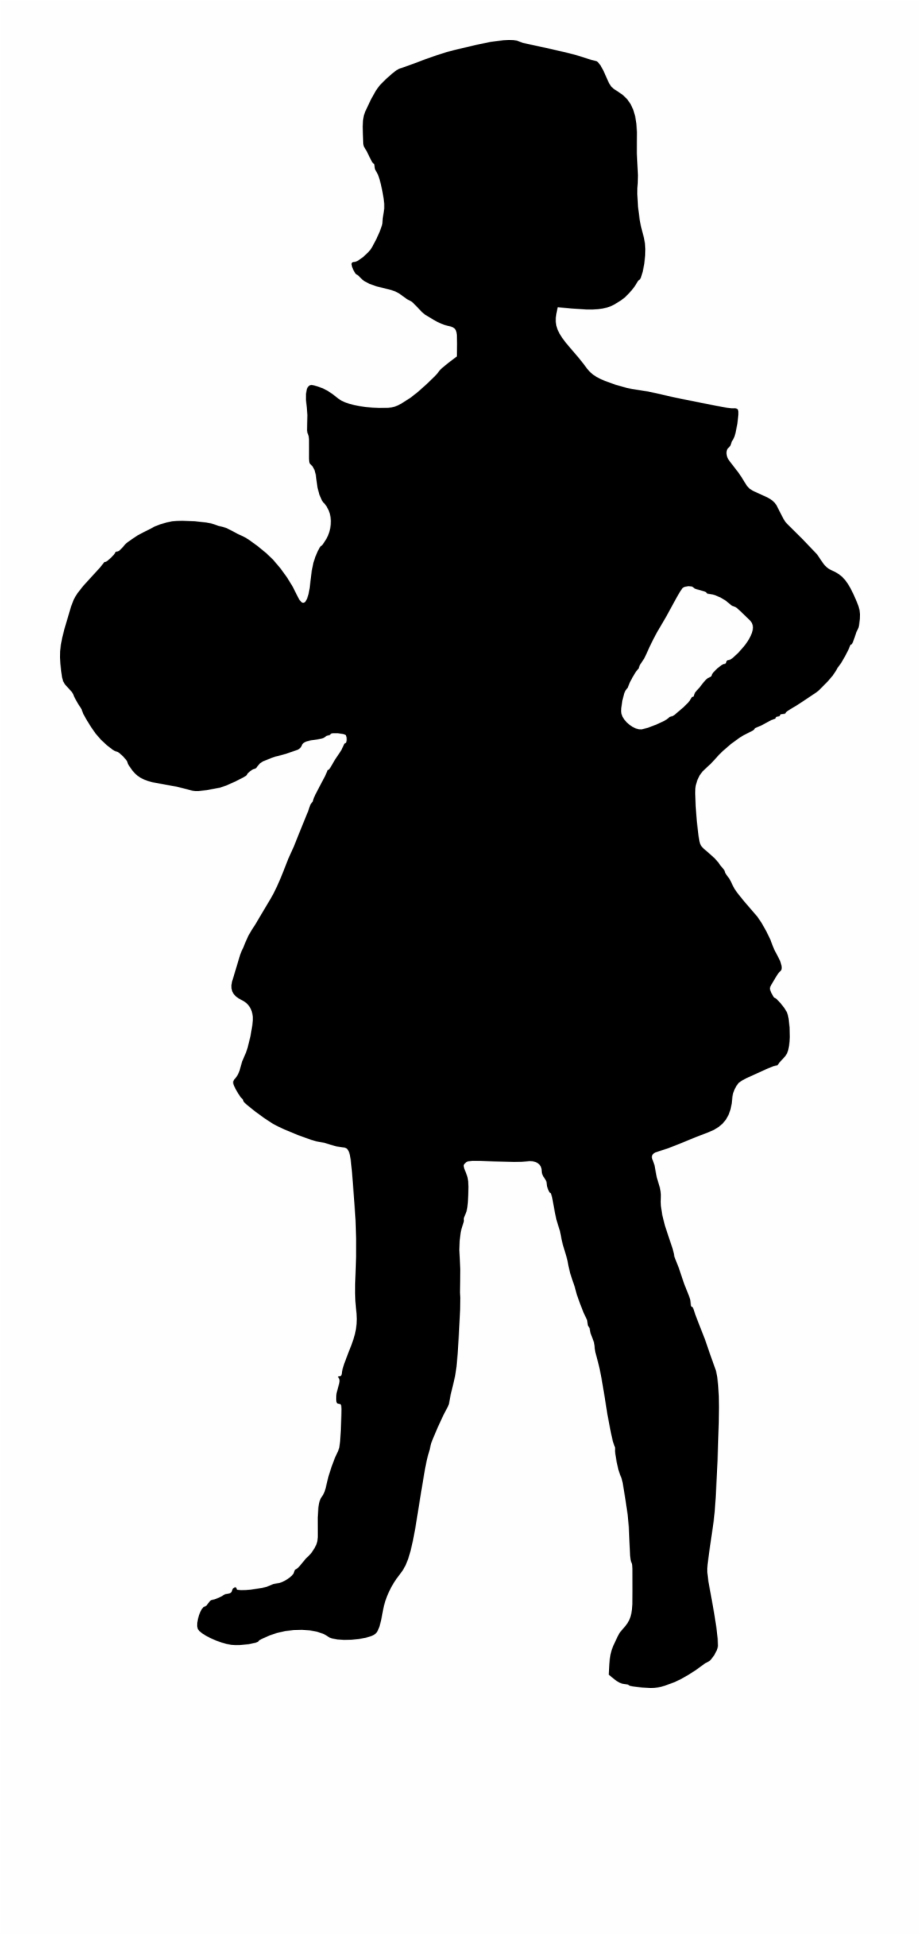 Troll doll black and white clipart silluette jpg library Free Download - Troll Kids Silhouette, Transparent Png ... jpg library